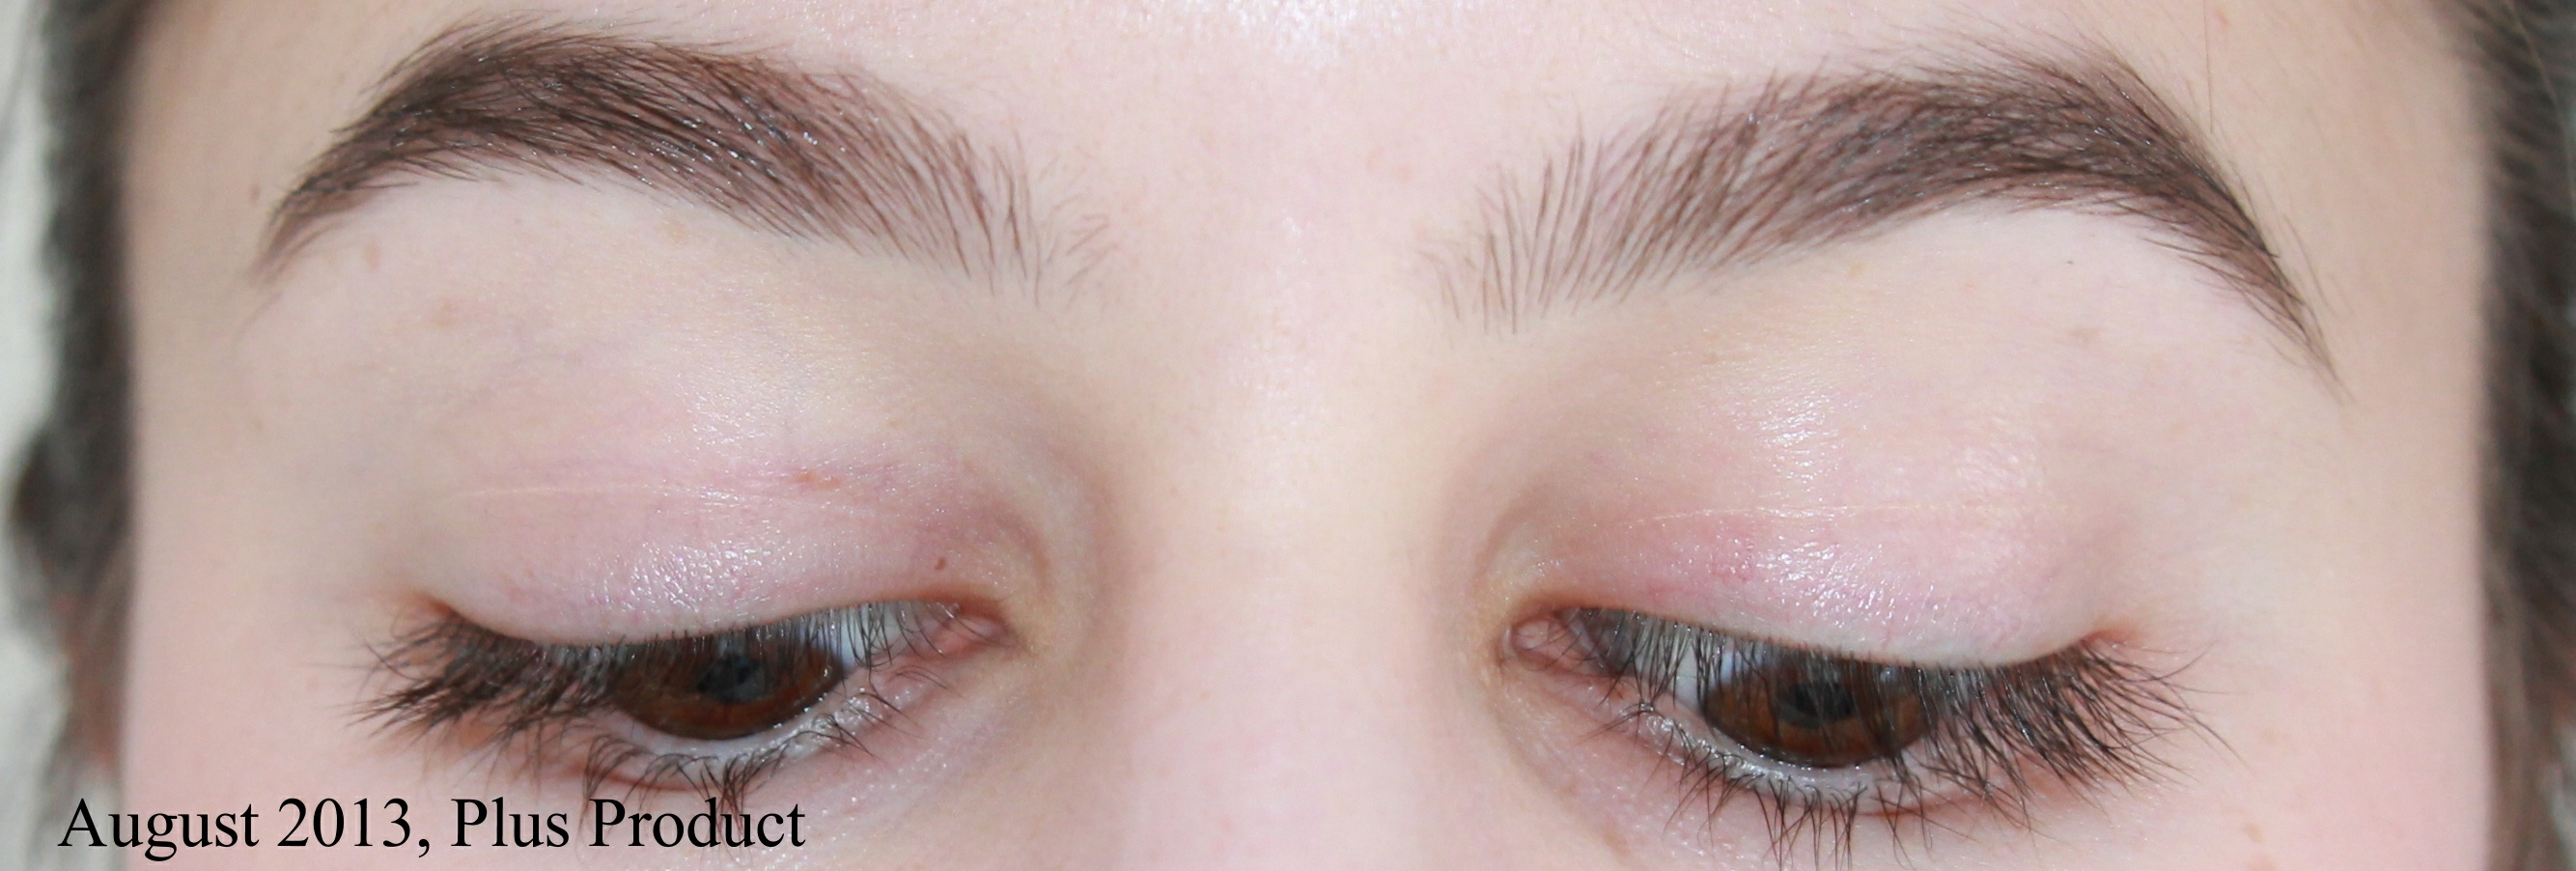 how to trim bushy eyebrows. growing out the brows: picture timeline and tips blog - shameless fripperies how to trim bushy eyebrows